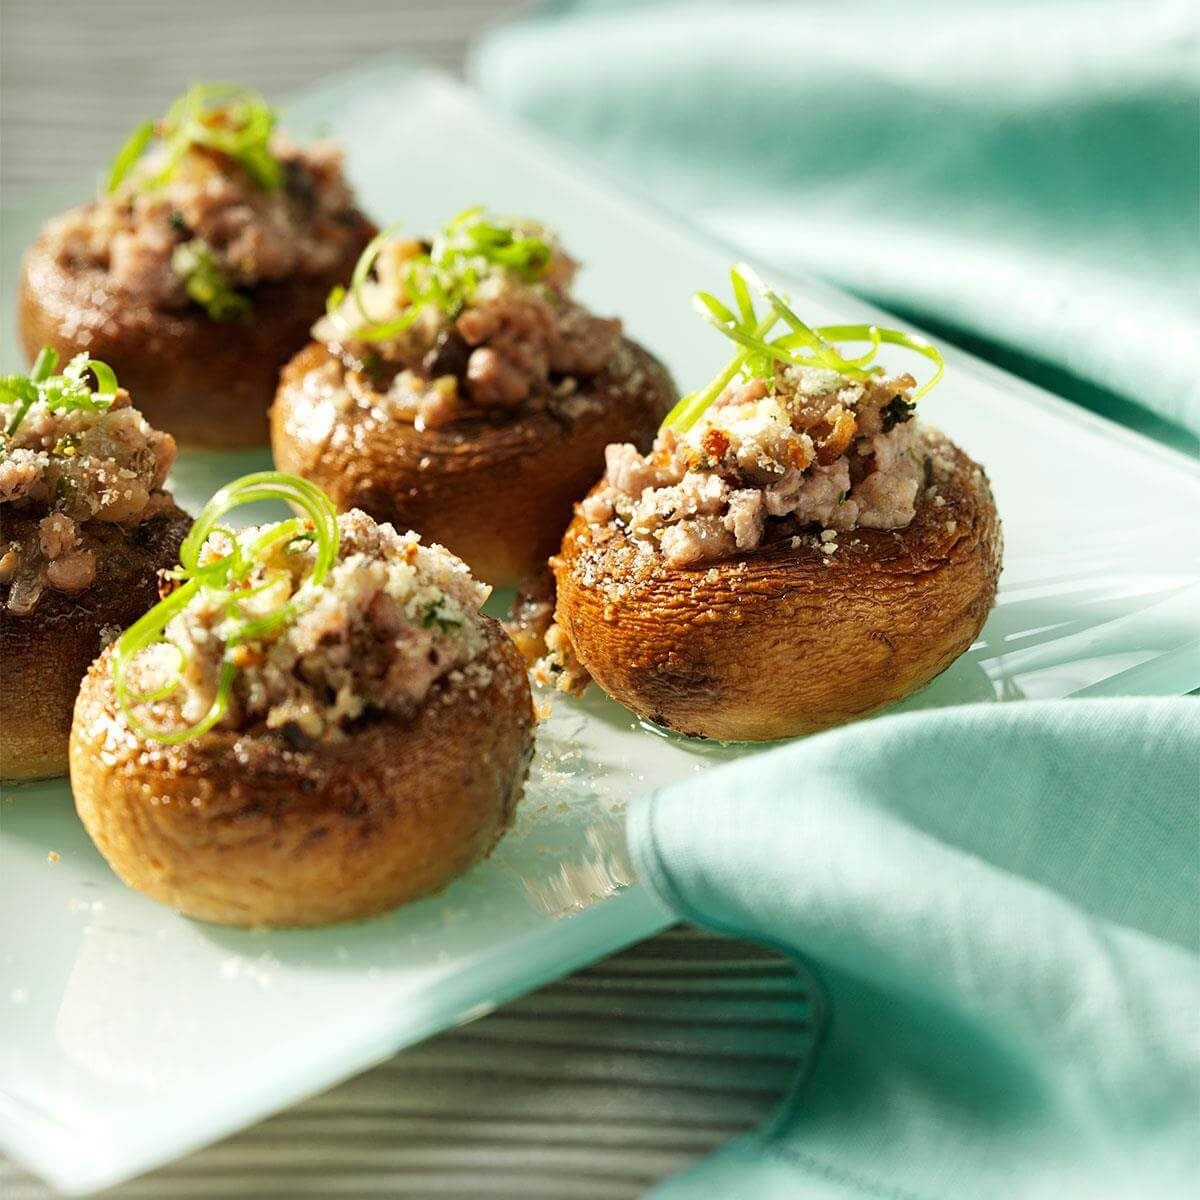 Easy Italian Desserts For A Crowd: Potluck Sausage-Stuffed Mushrooms